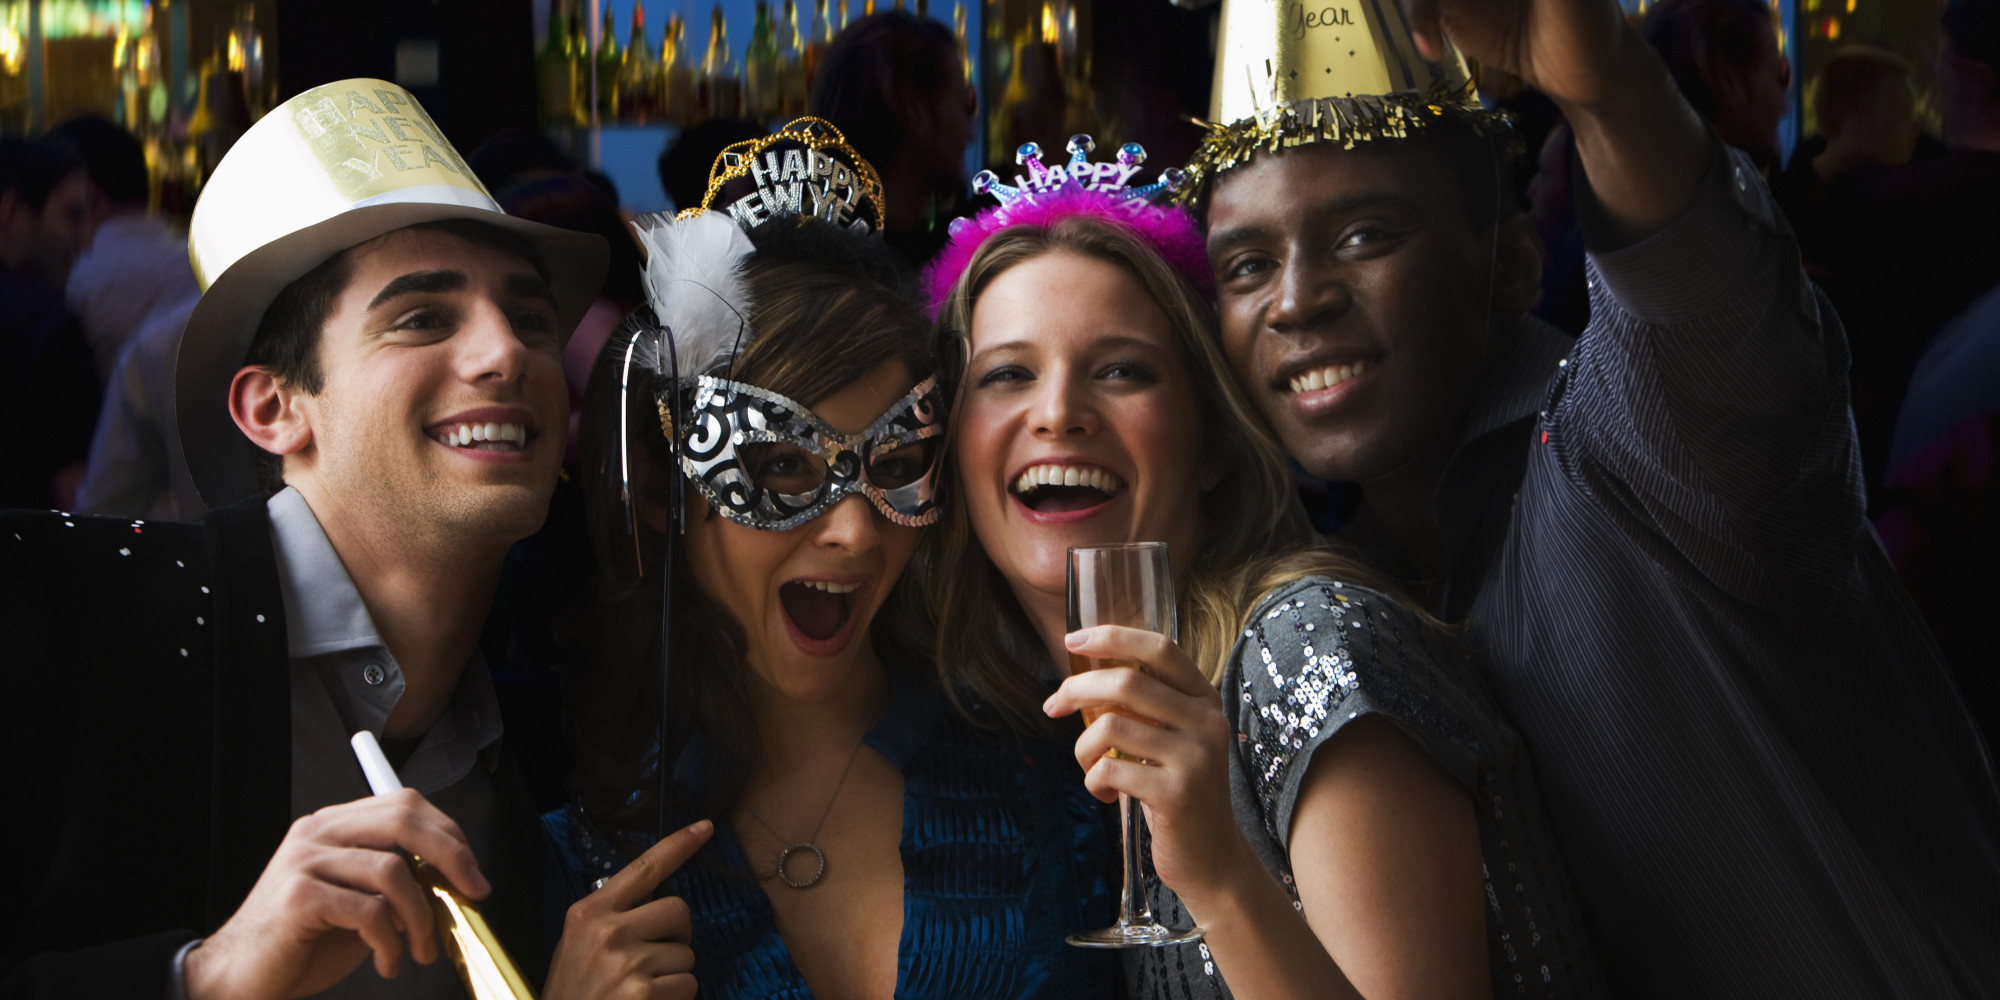 10 Costumes You Shouldn't Wear to a New Year's Eve Party